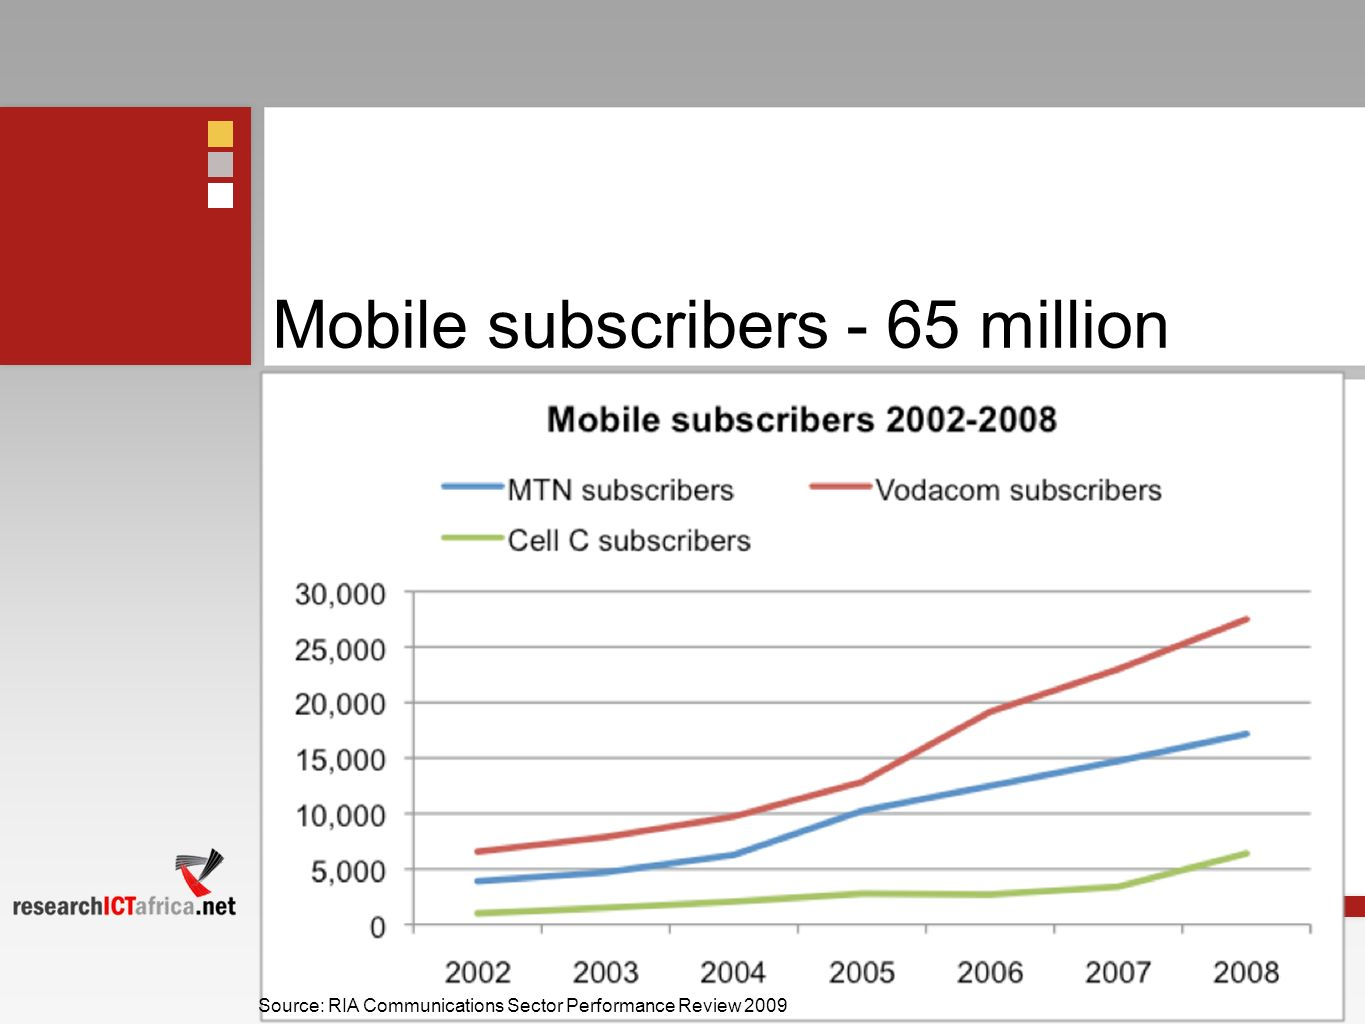 Mobile subscribers - 65 million